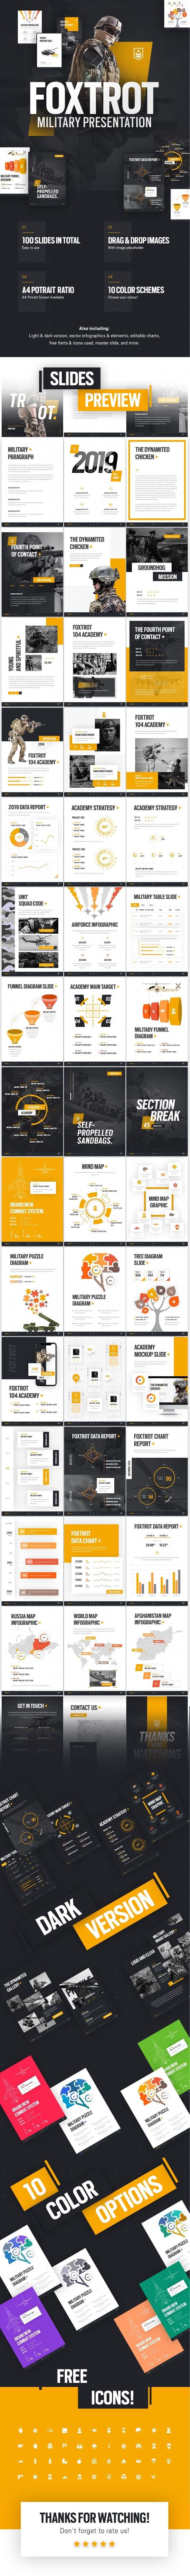 Foxtrot Military Portrait PowerPoint Presentation Template - Abstract PowerPoint Templates